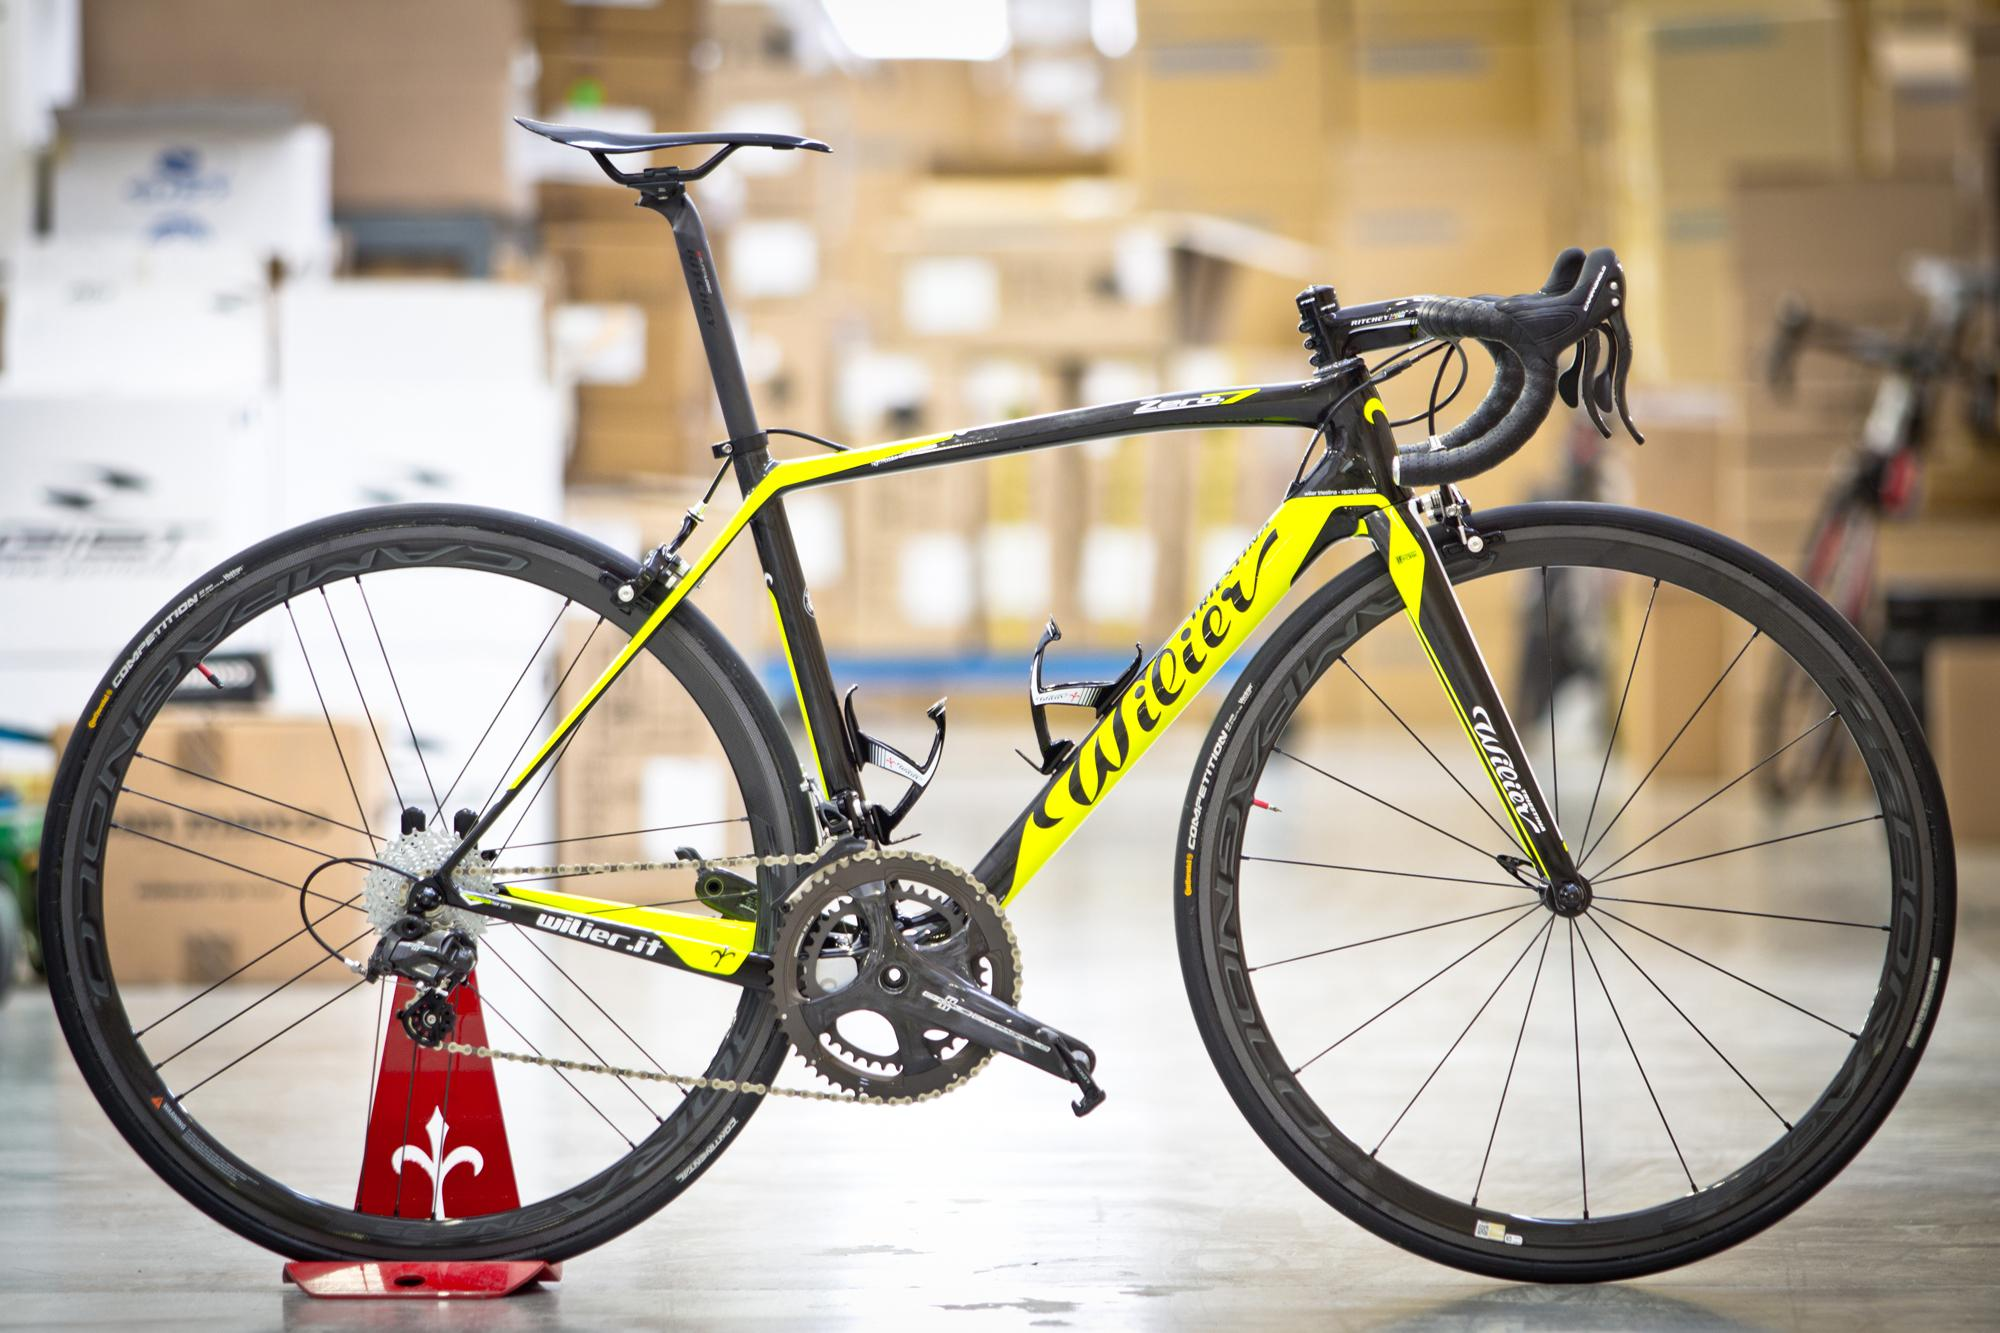 6.6 kg bike! Just a Zero.7 with full @campagnolosrl Chorus and Bora35 #lovemywilier #superbike #wilier http://t.co/vA9qQxe6V6